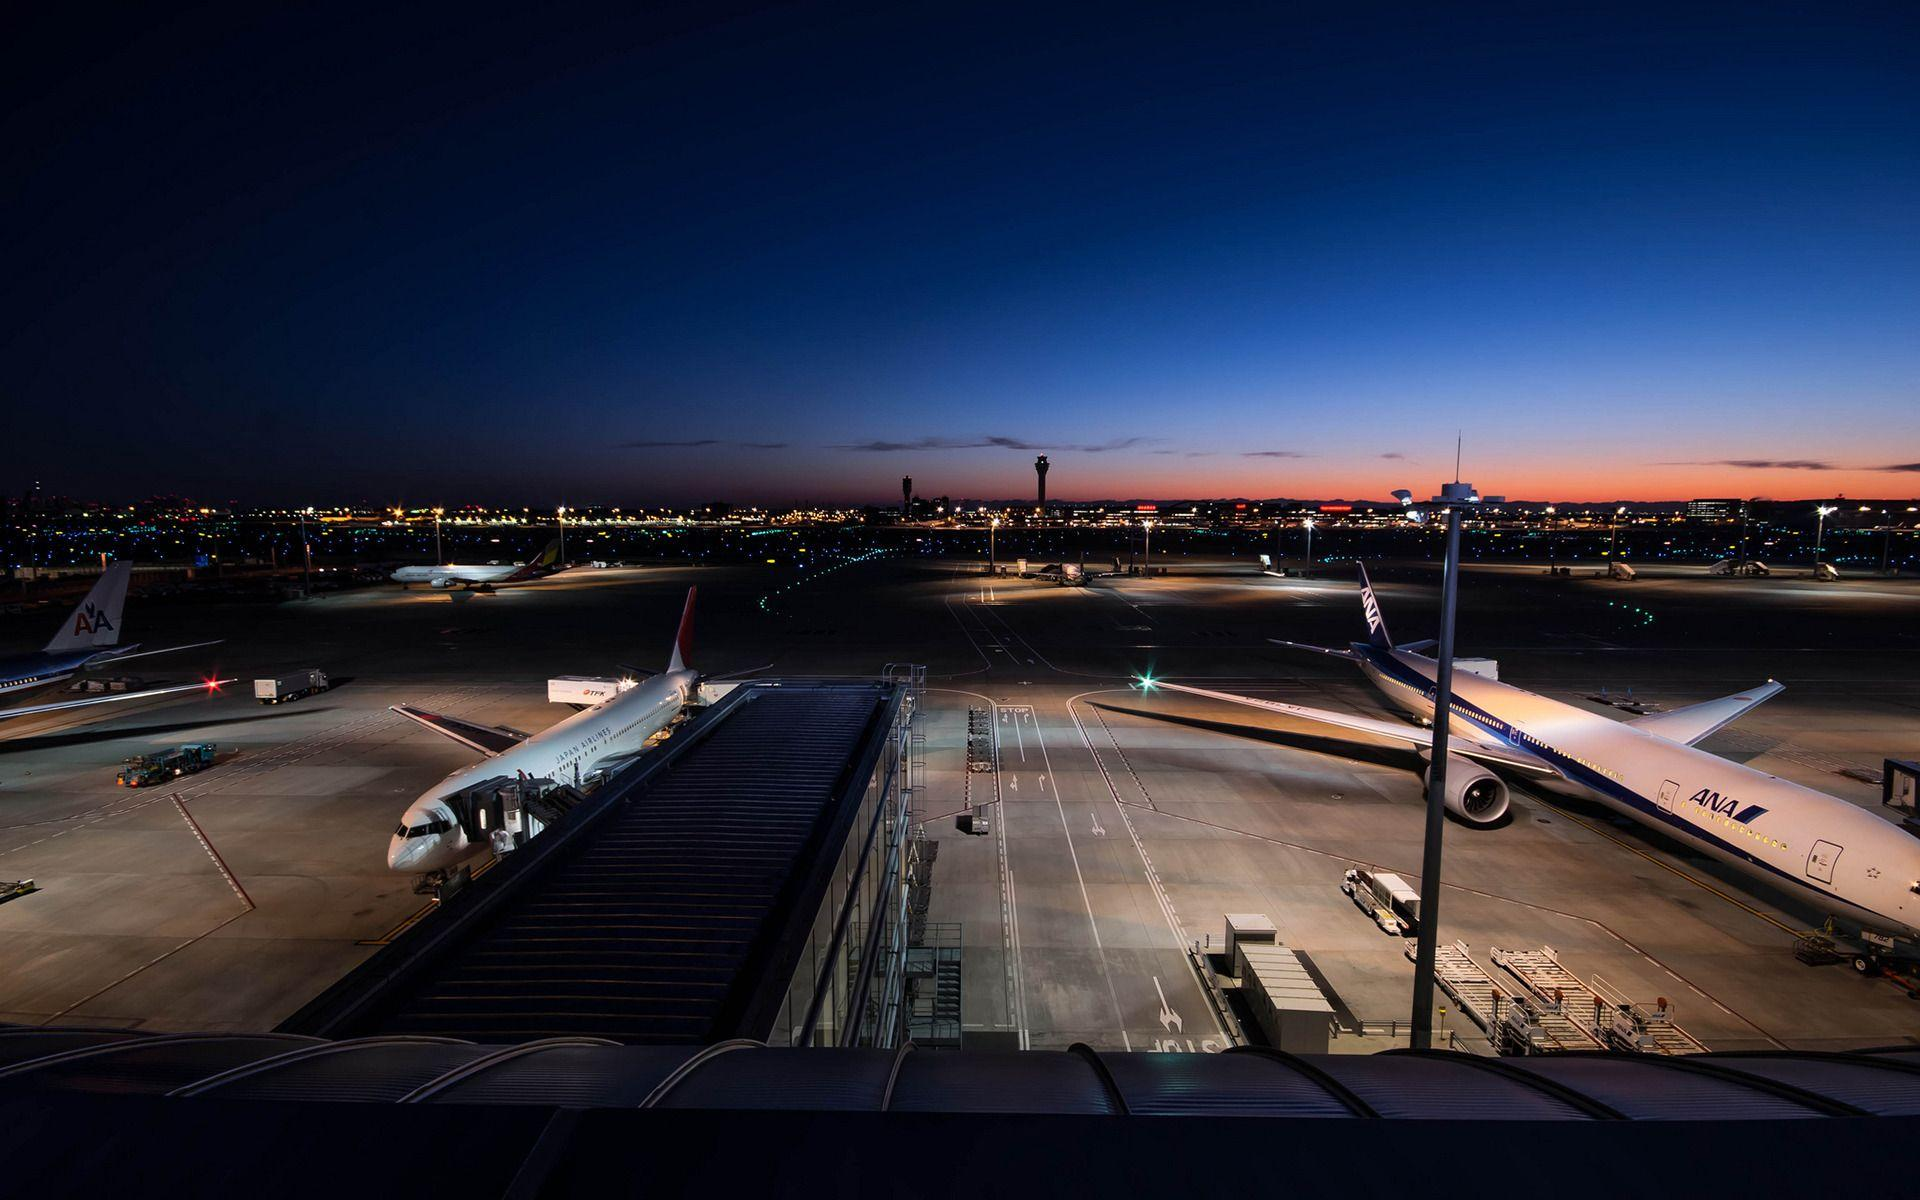 evening airport desktop wallpaper 70877